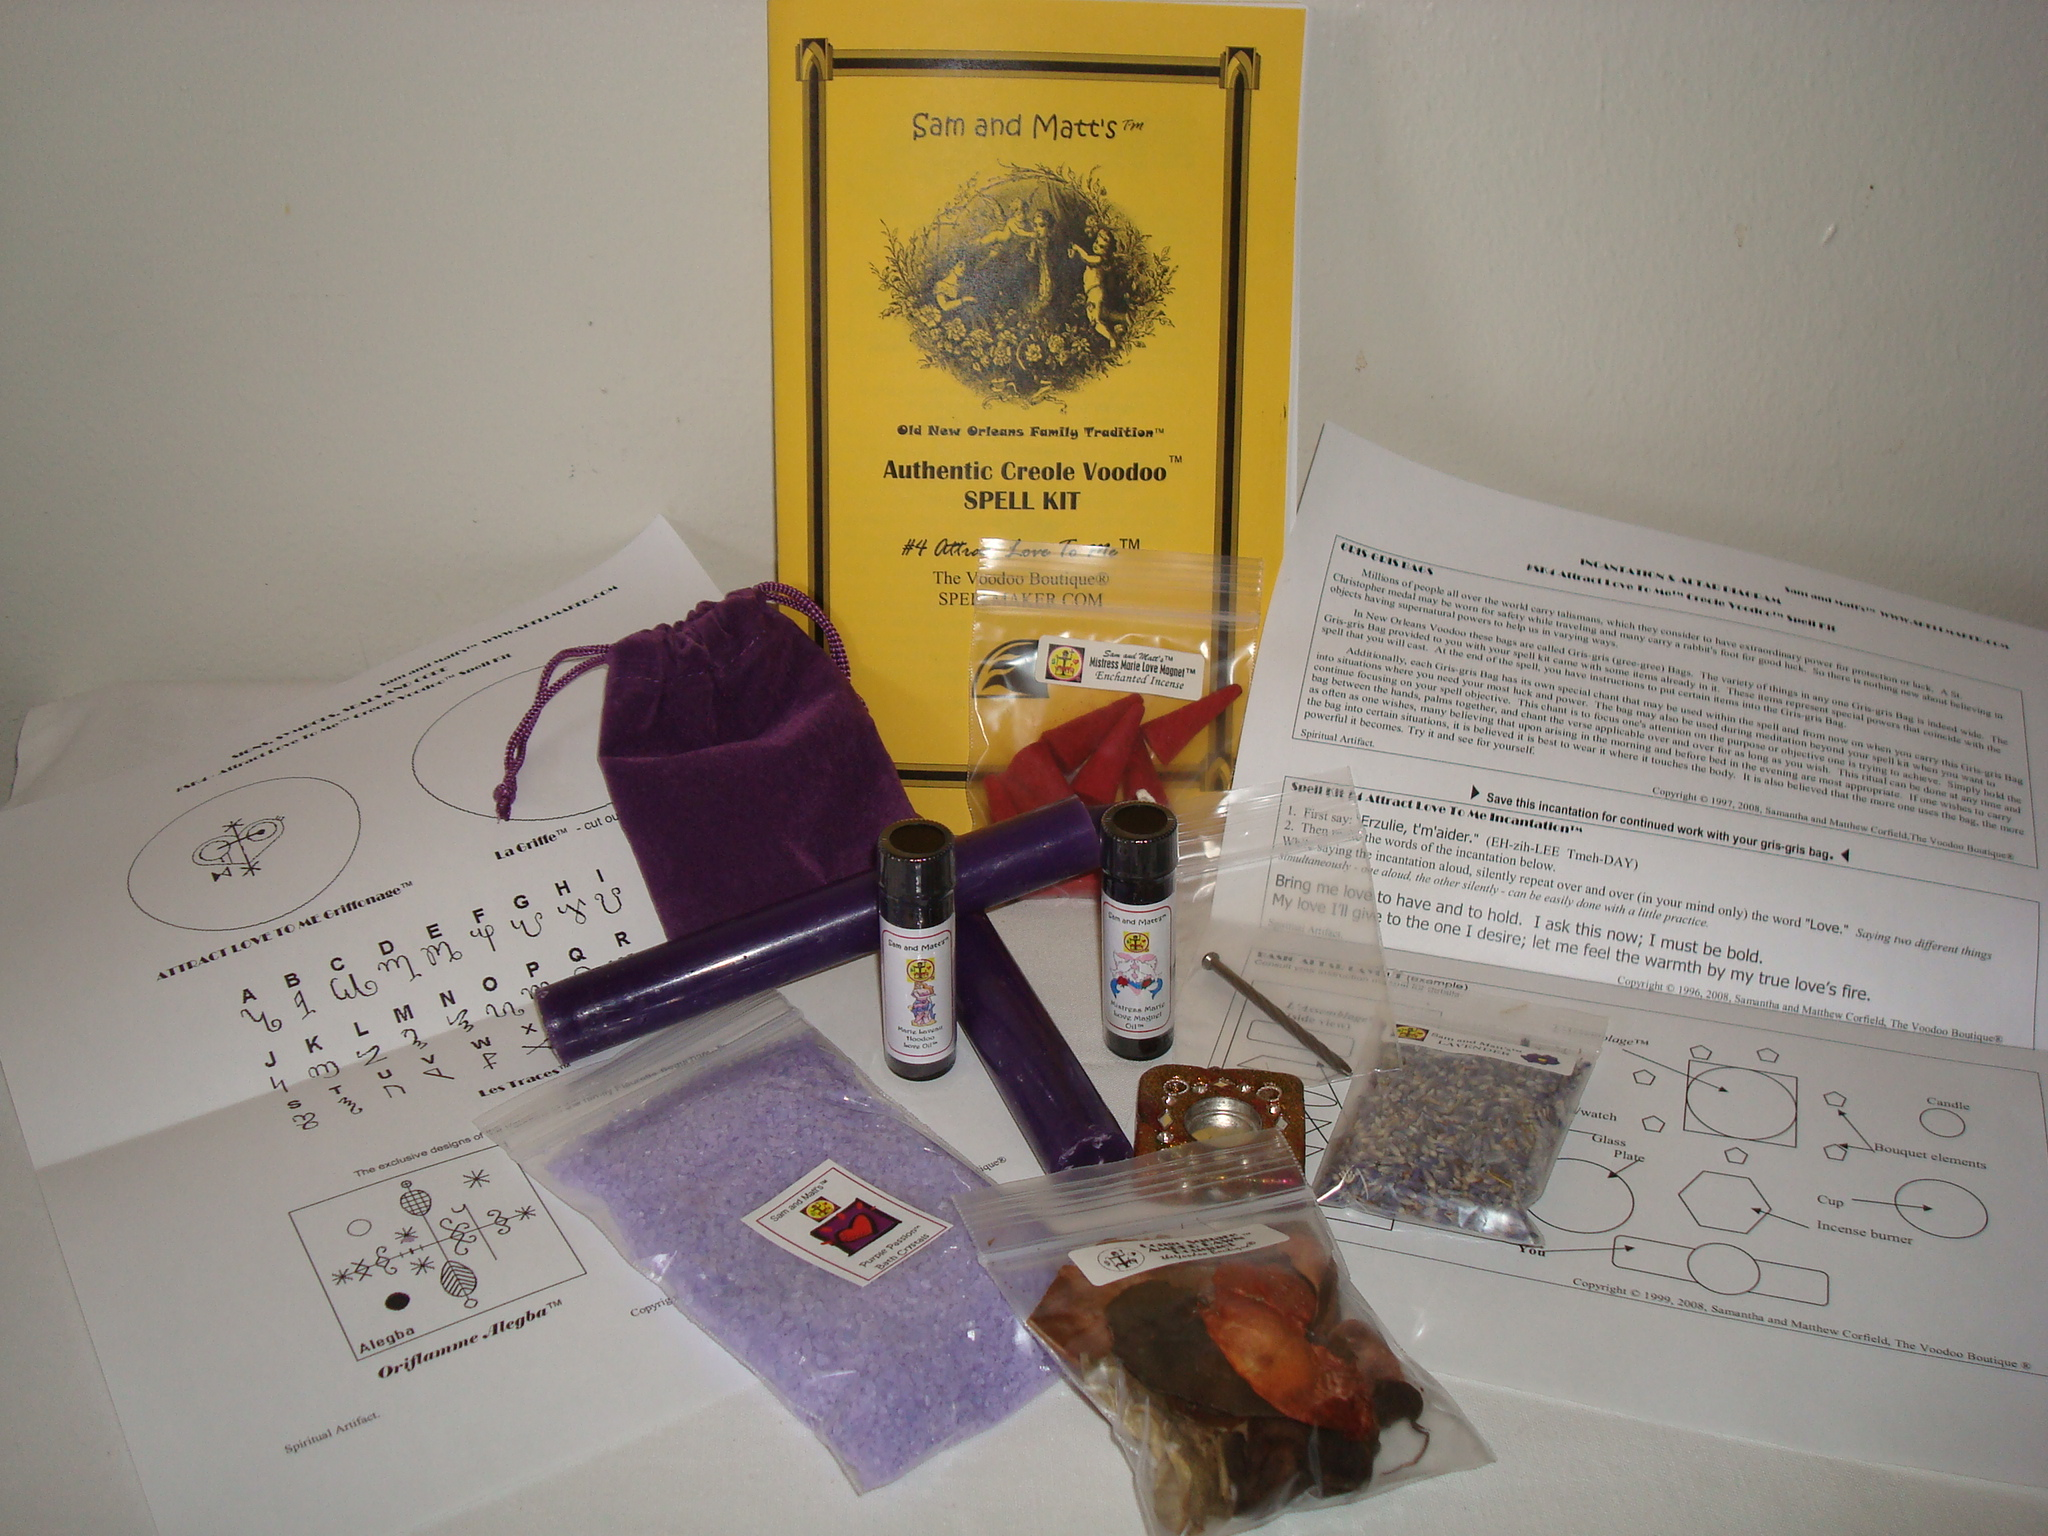 love spell kits